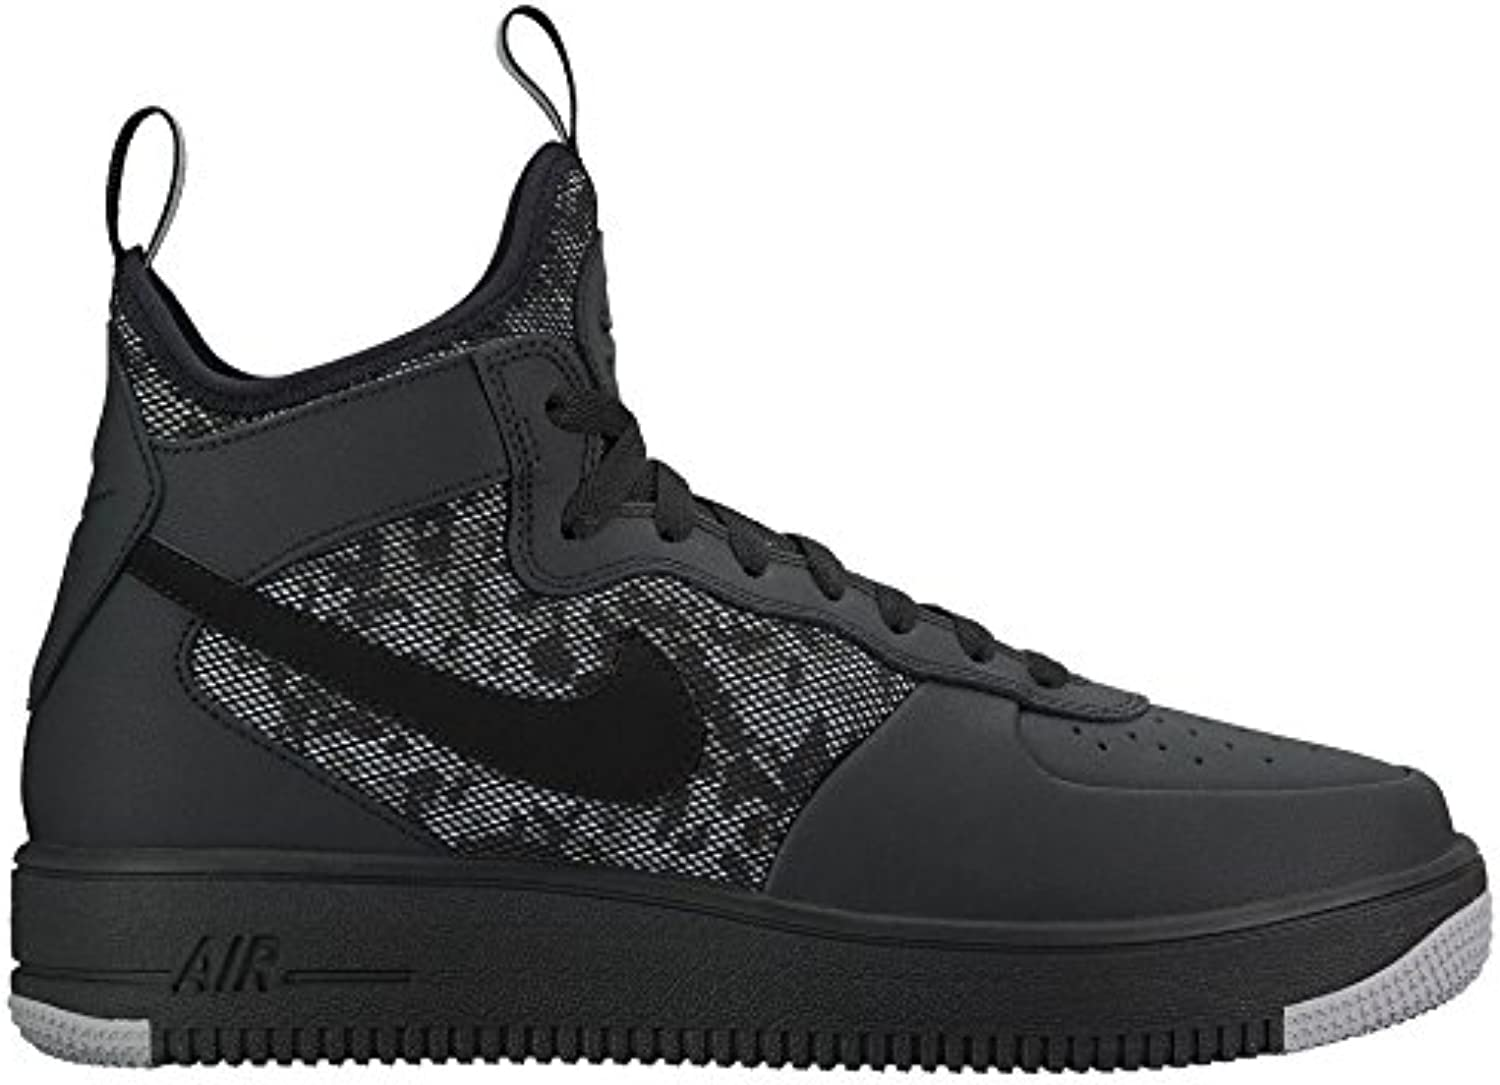 Nike Air Force 1 Ultraforce Mid